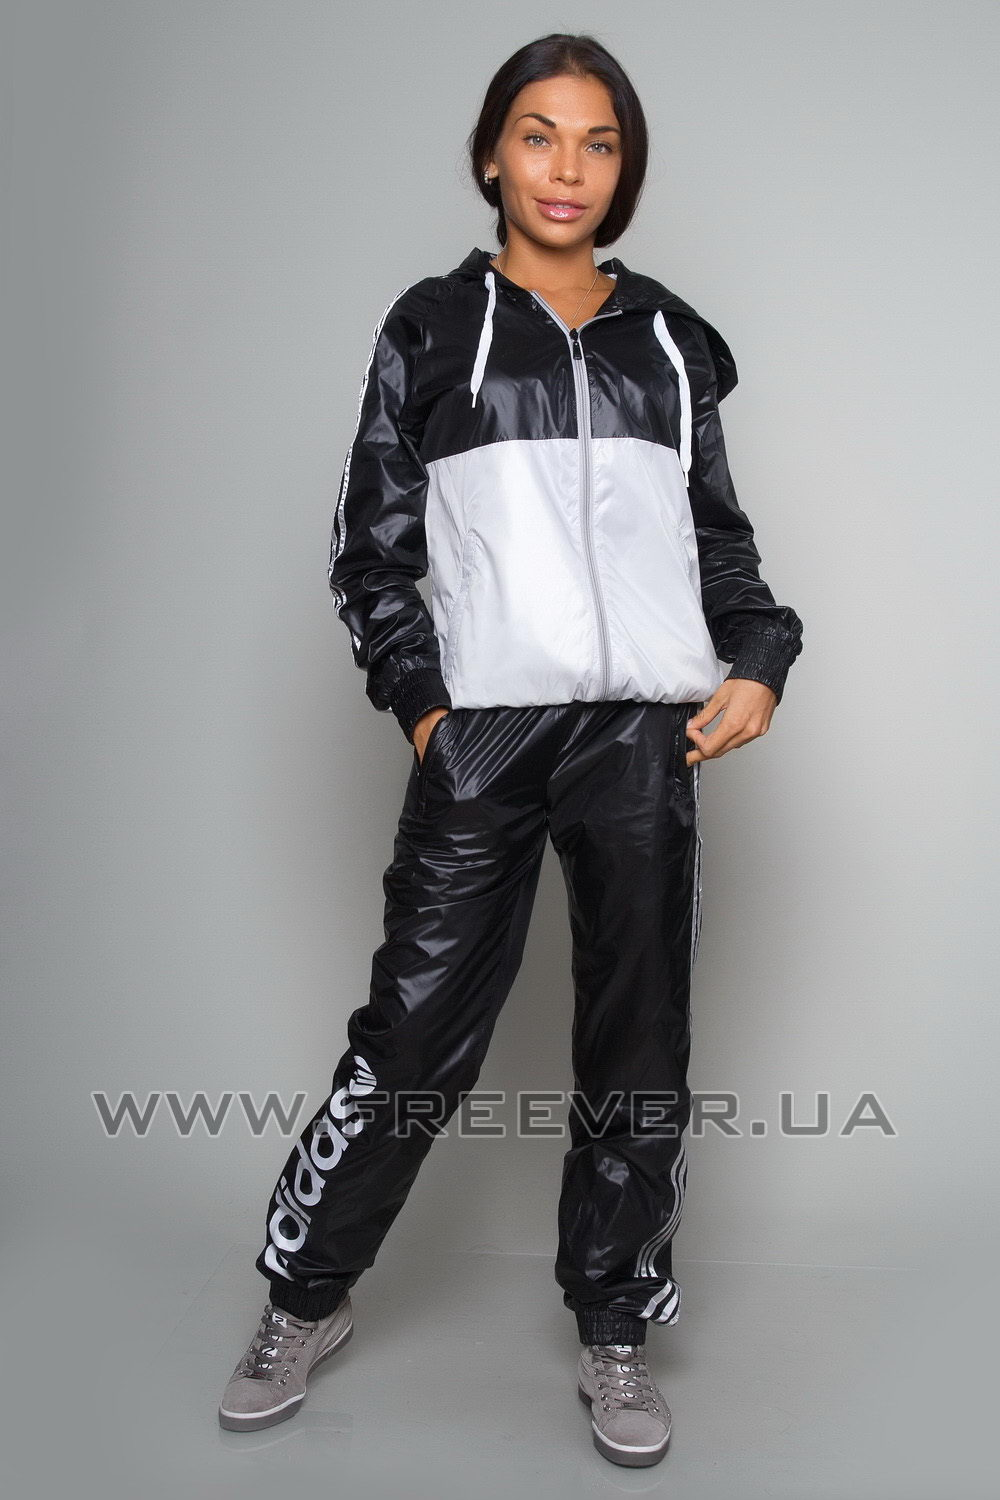 Black and White Shiny Tracksuit from Adidas